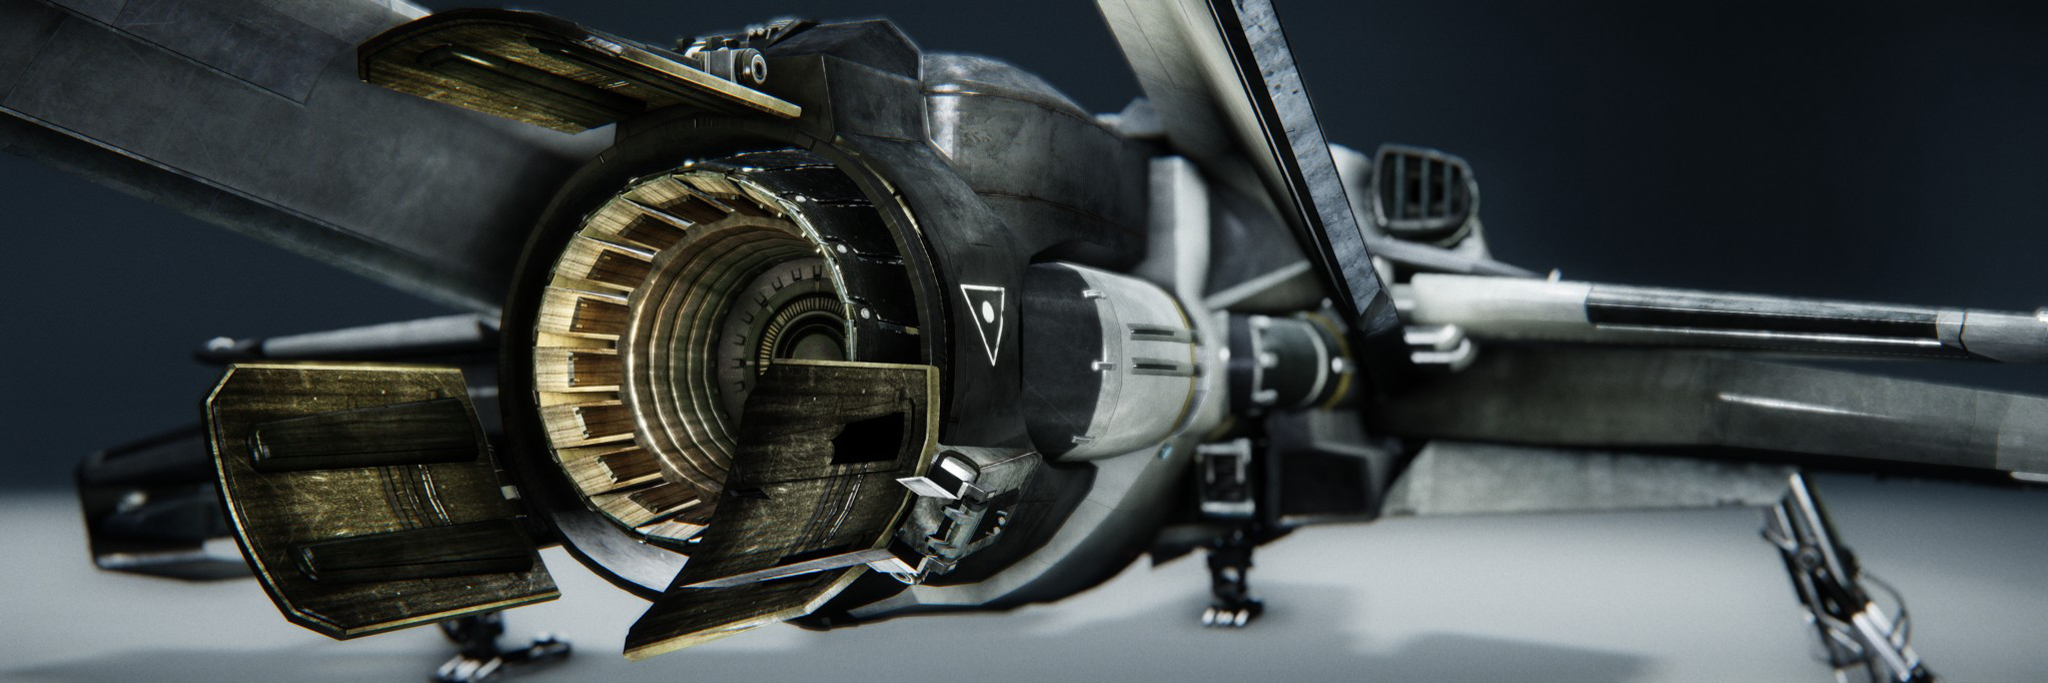 Hornet F7C engine visual.jpg